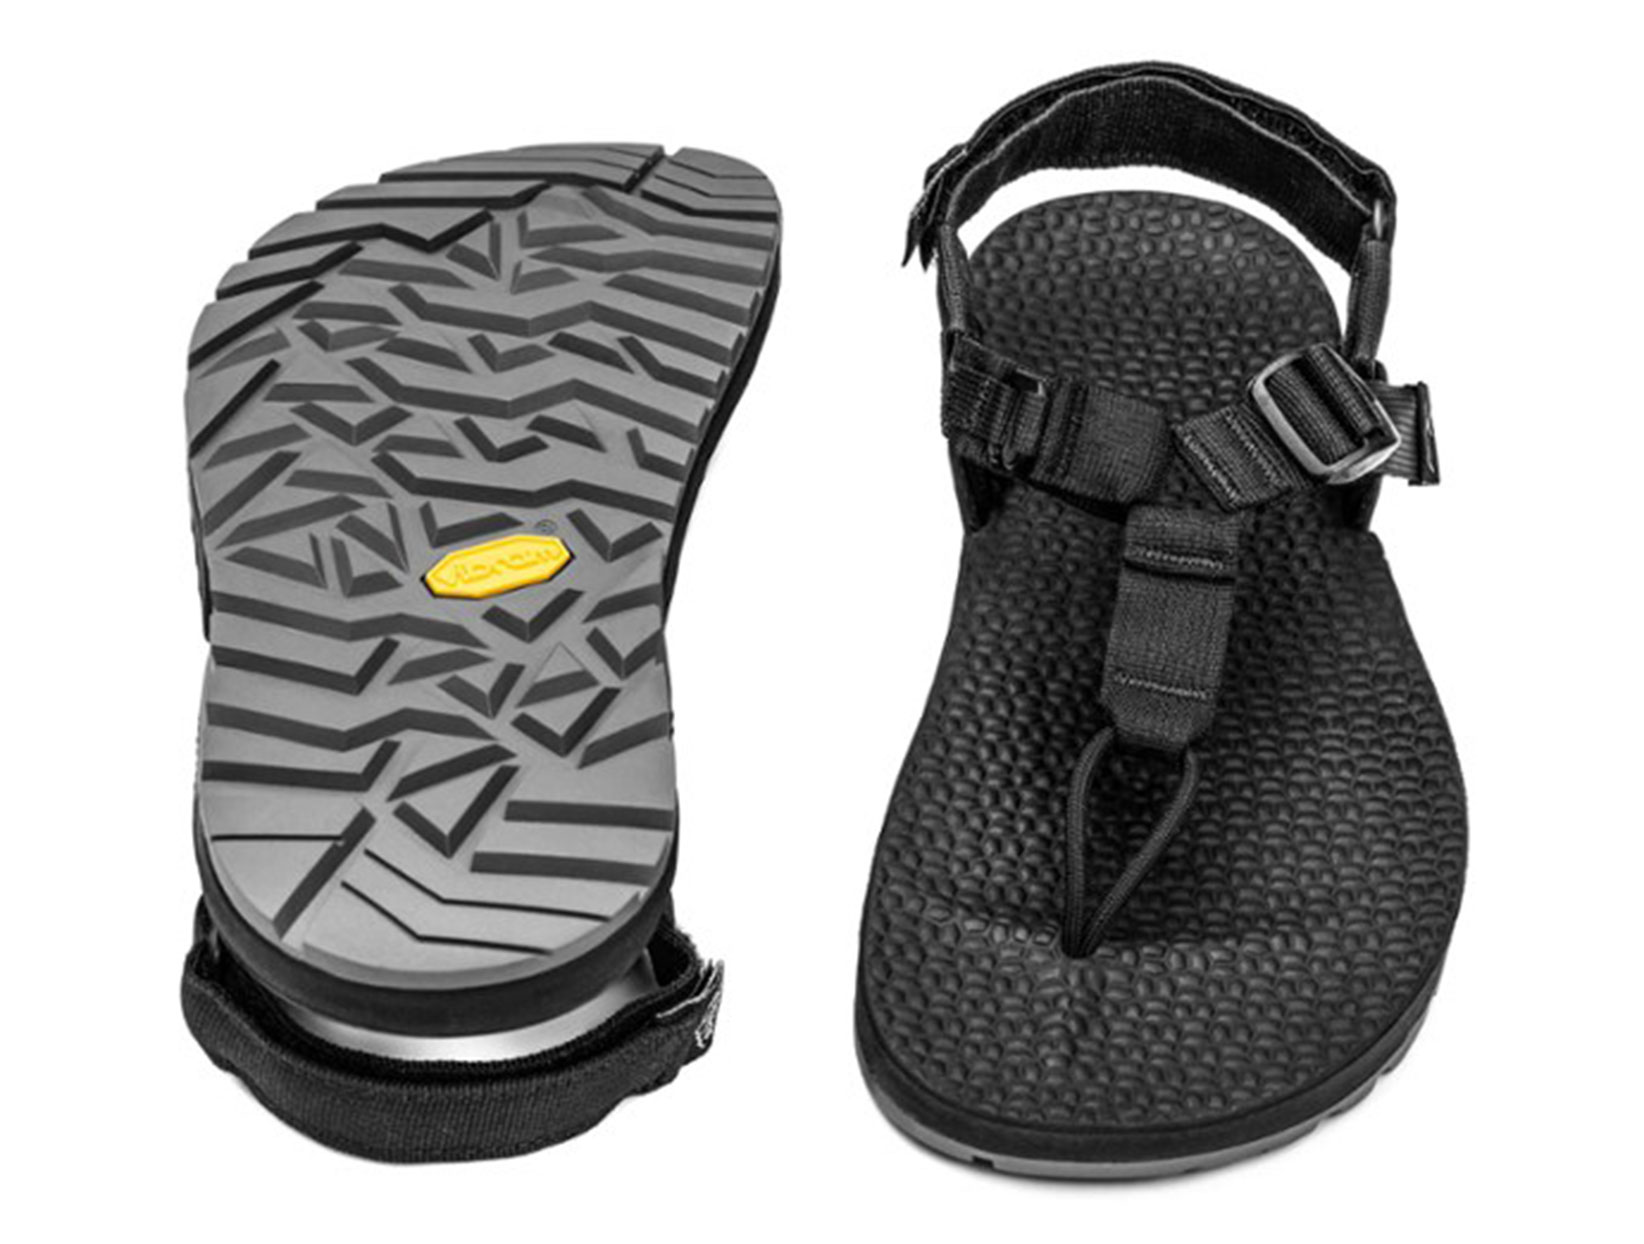 Bedrock's sandals go the distance, literally: These hardy, ultralight hiking sandals are burly enough for some super-weight-conscious thru-hikers to wear for hundreds of miles along the Appalachian and Pacific Crest Trails. Testers who wore Bedrocks around town and on mild trails in the Rocky Mountains say they love the combination of grippy soles with deep treads, uppers that provide support, and minimalist straps that still provide enough security. The thong-style strap system frees your toes and doesn't rub against the sides of your feet in an uncomfortable way.